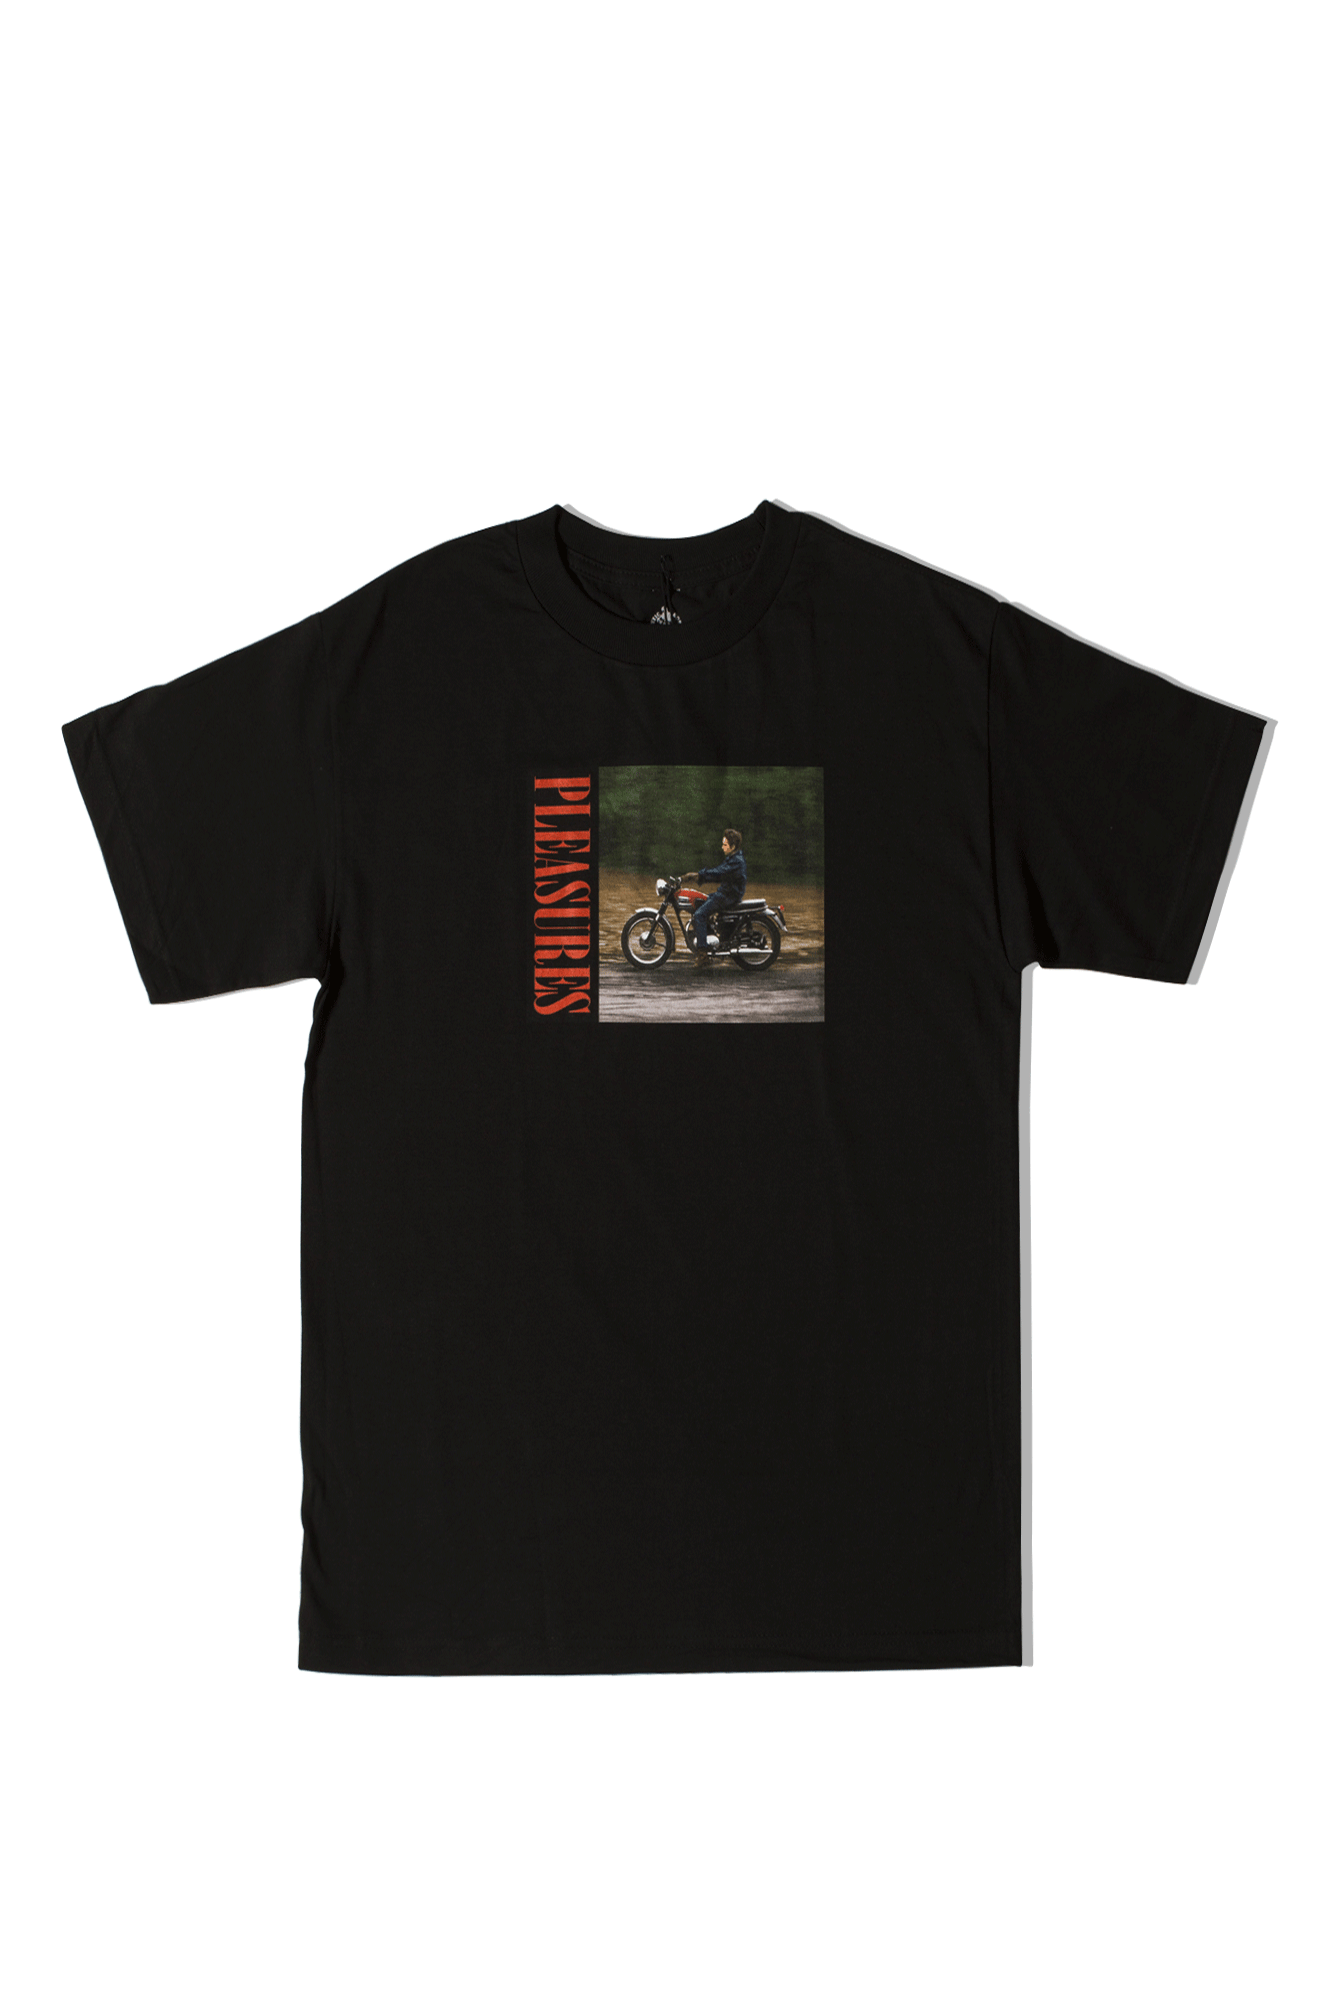 Bob Dylan Ride T-Shirt Nero